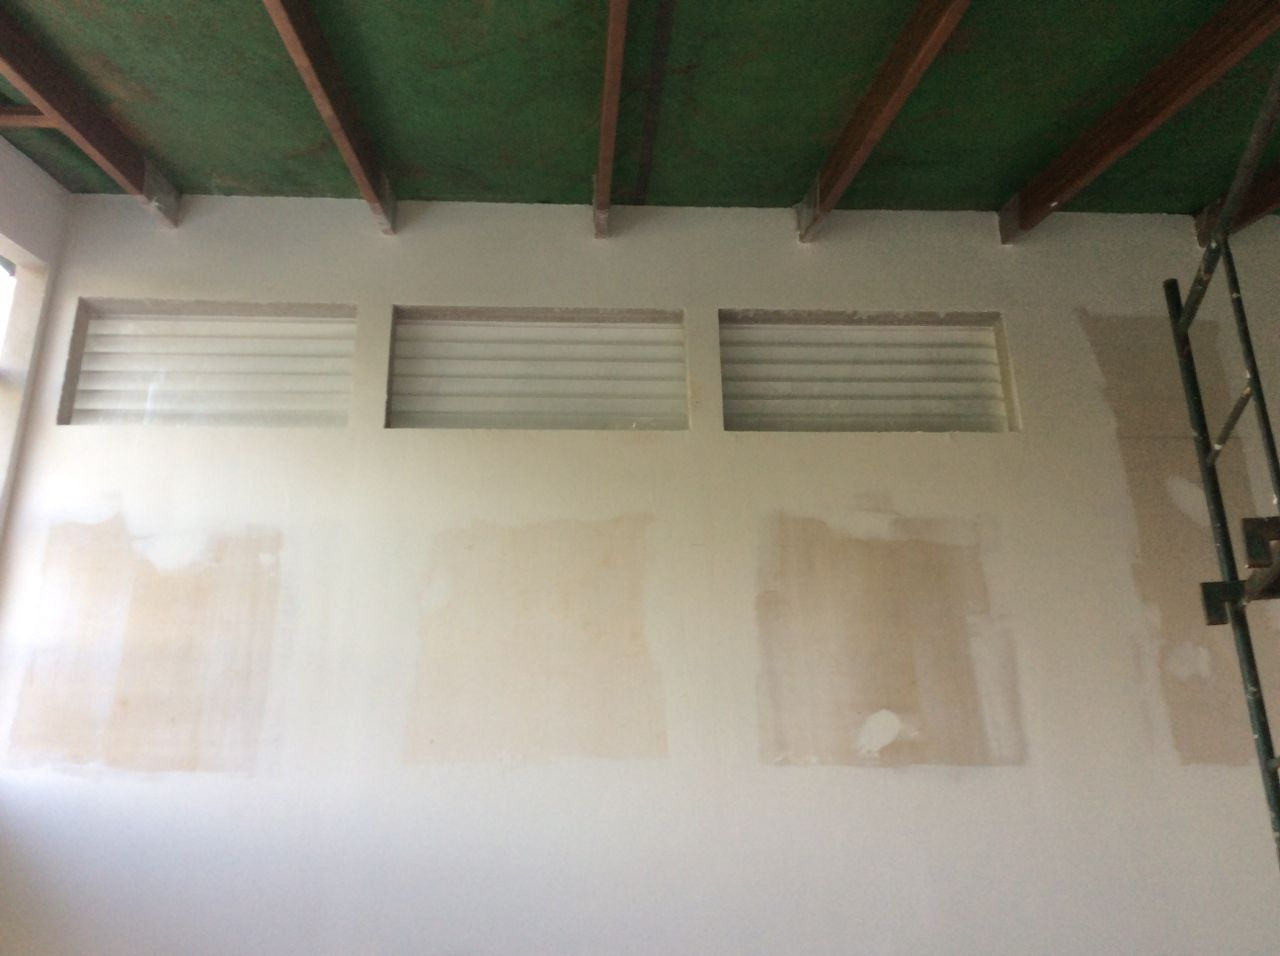 Louvers from living room